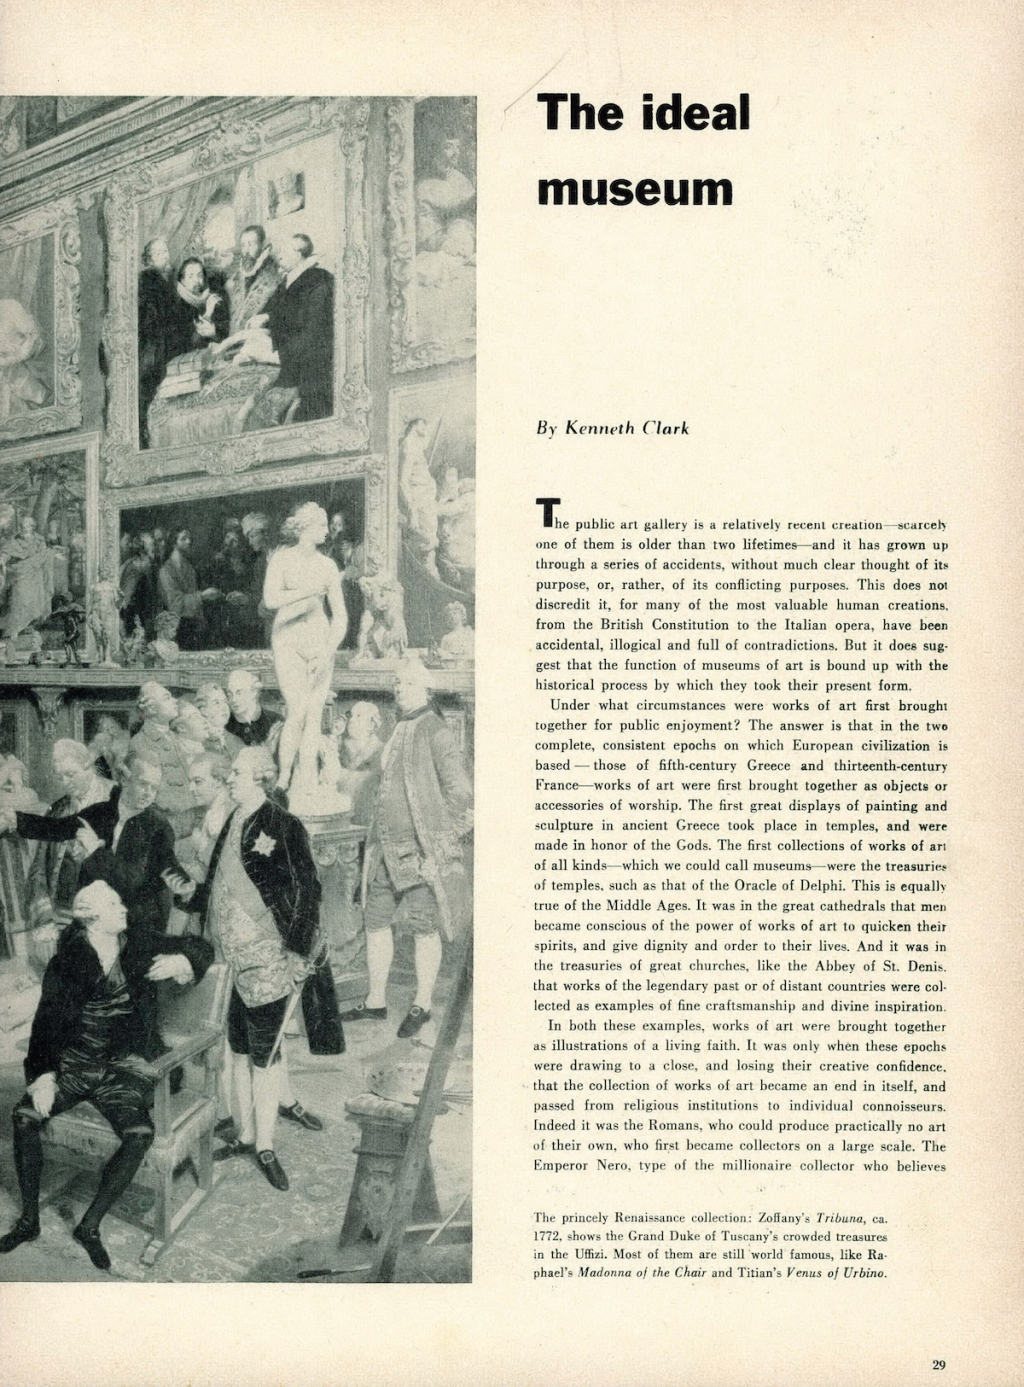 'It's Pretty Dead-On': Curator Laura Raicovich on a 1954 Article About the State of Western Museums